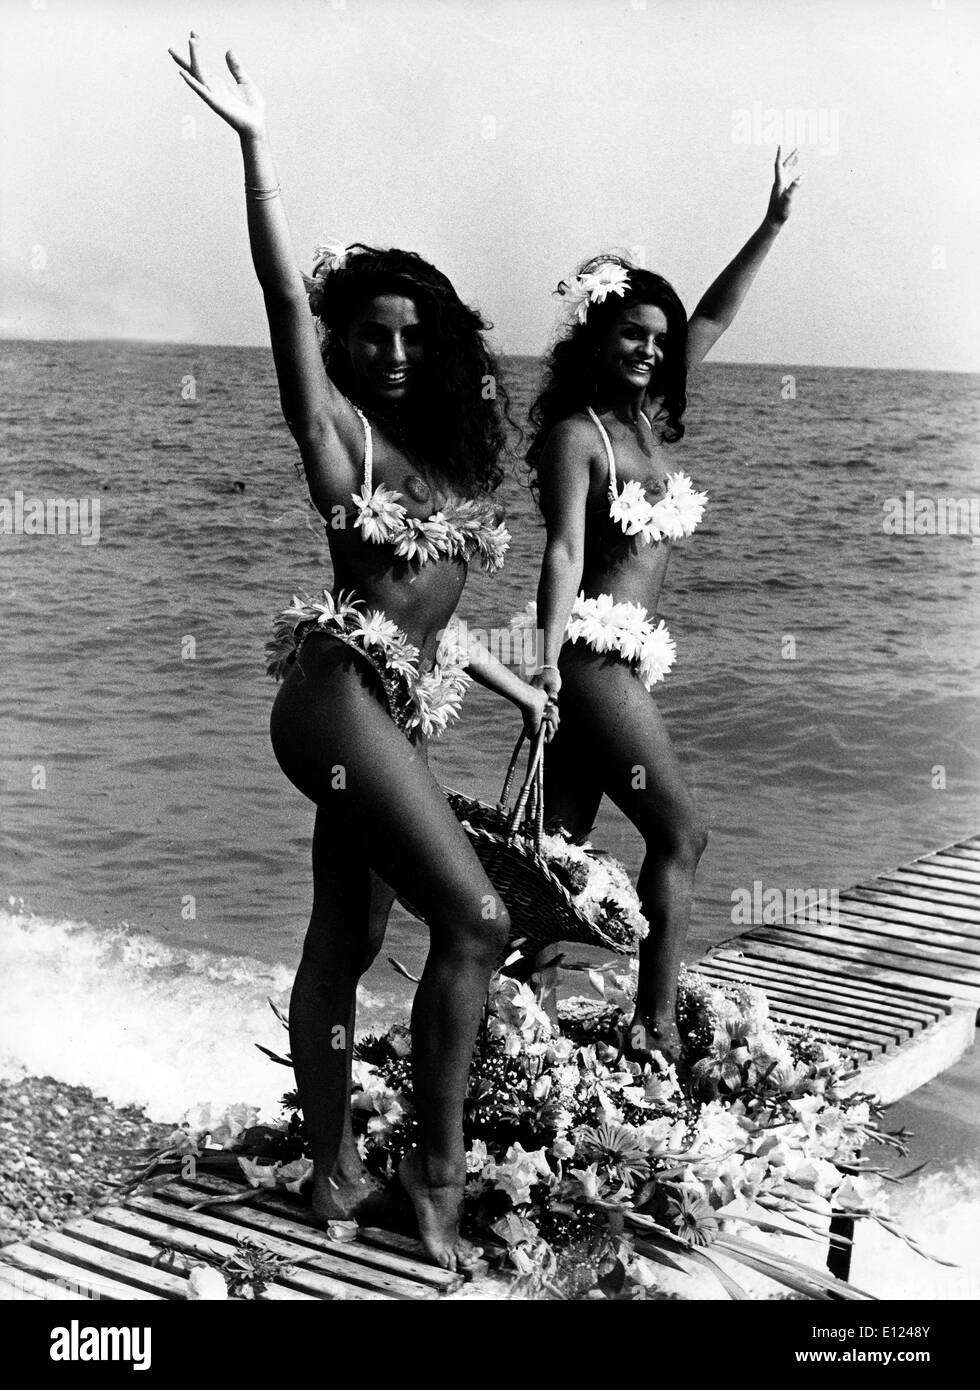 Jul 08, 1985; Nice, FRANCE; Models VALERIE and JOANNE wearing bathing suits made out of flowers in the French Riviera.. - Stock Image